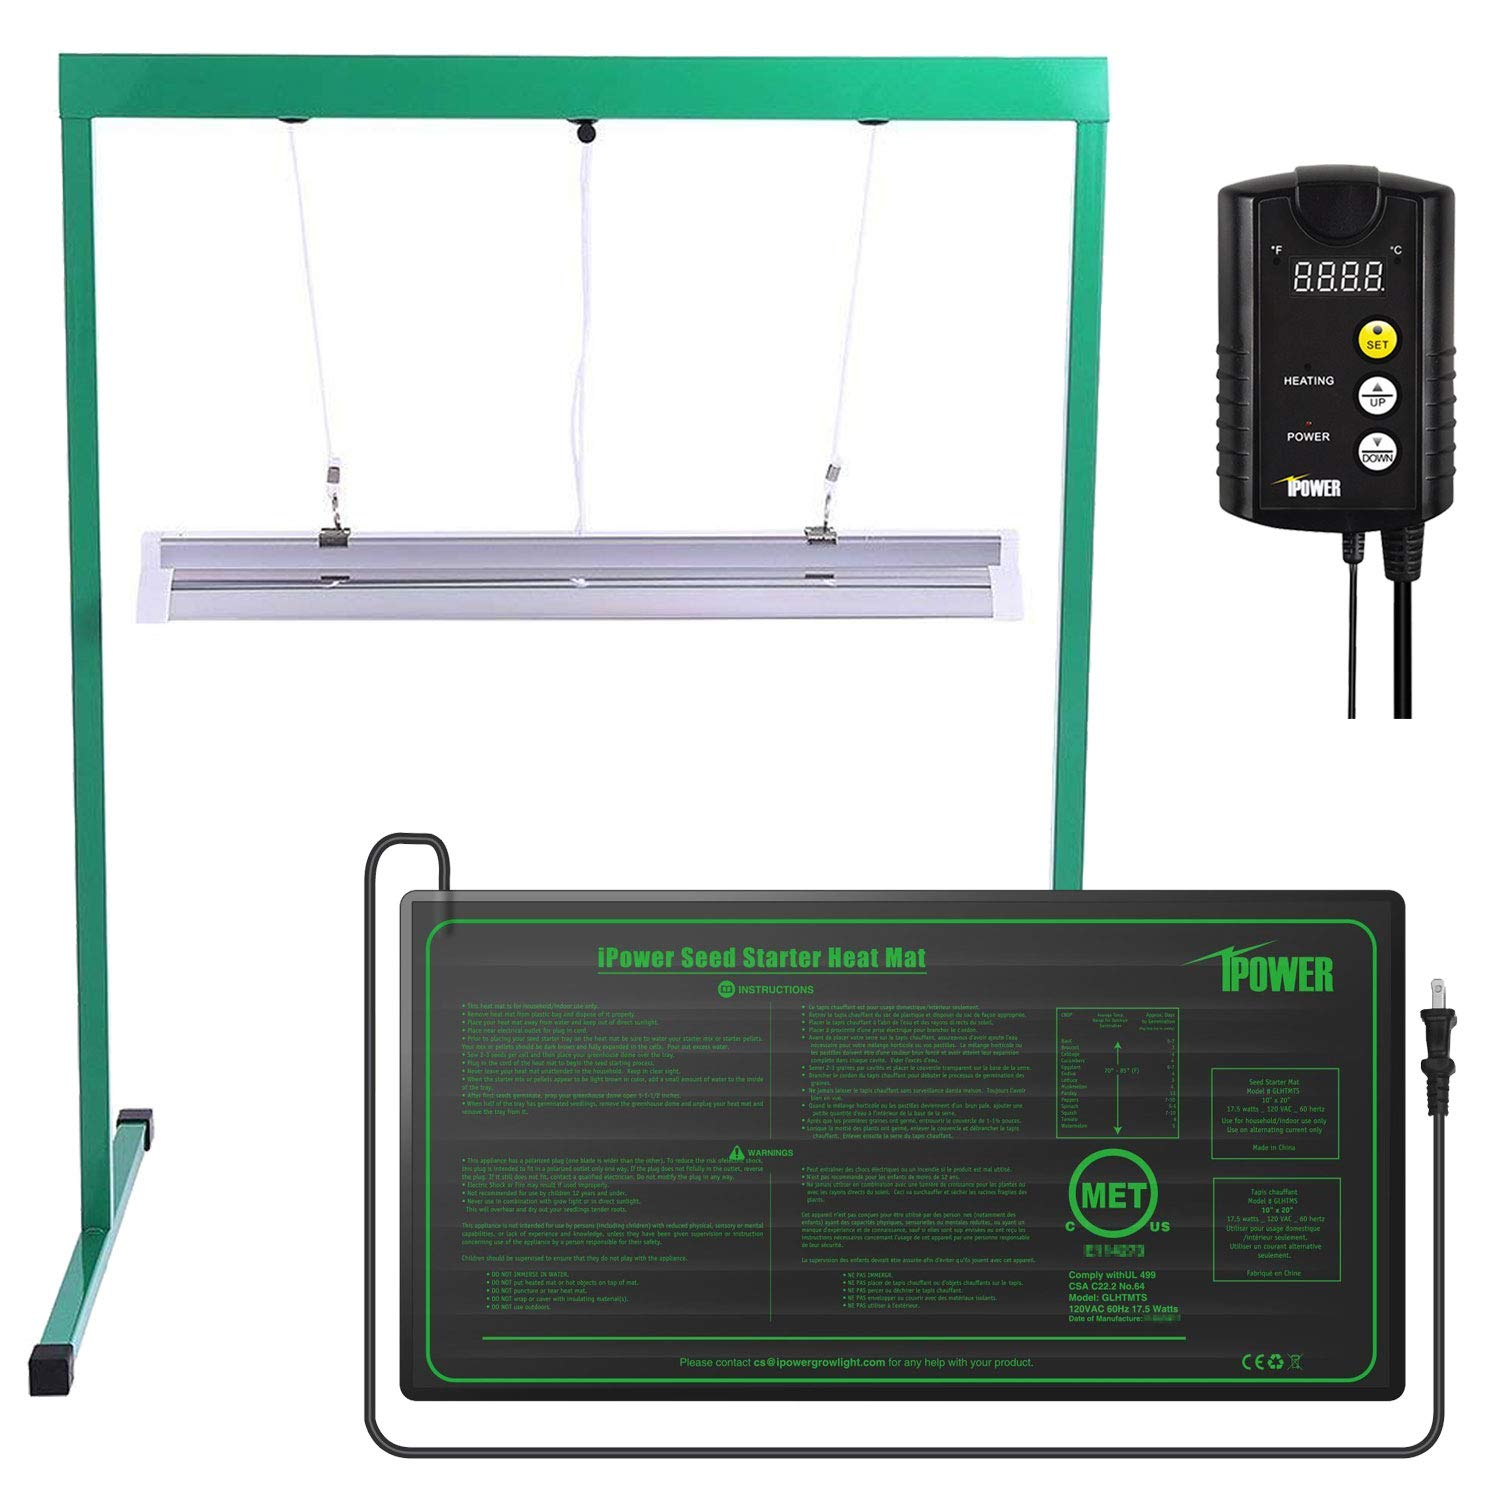 iPower 24W 2 Feet T5 Fluorescent Grow Light Stand Rack (6400k) and 10'' x 20.5'' Seedling Heat Mat and 40-108 Degrees Fahrenheit Digital Heat Mat Thermostat Controller Combo Set for Seed Germination by iPower